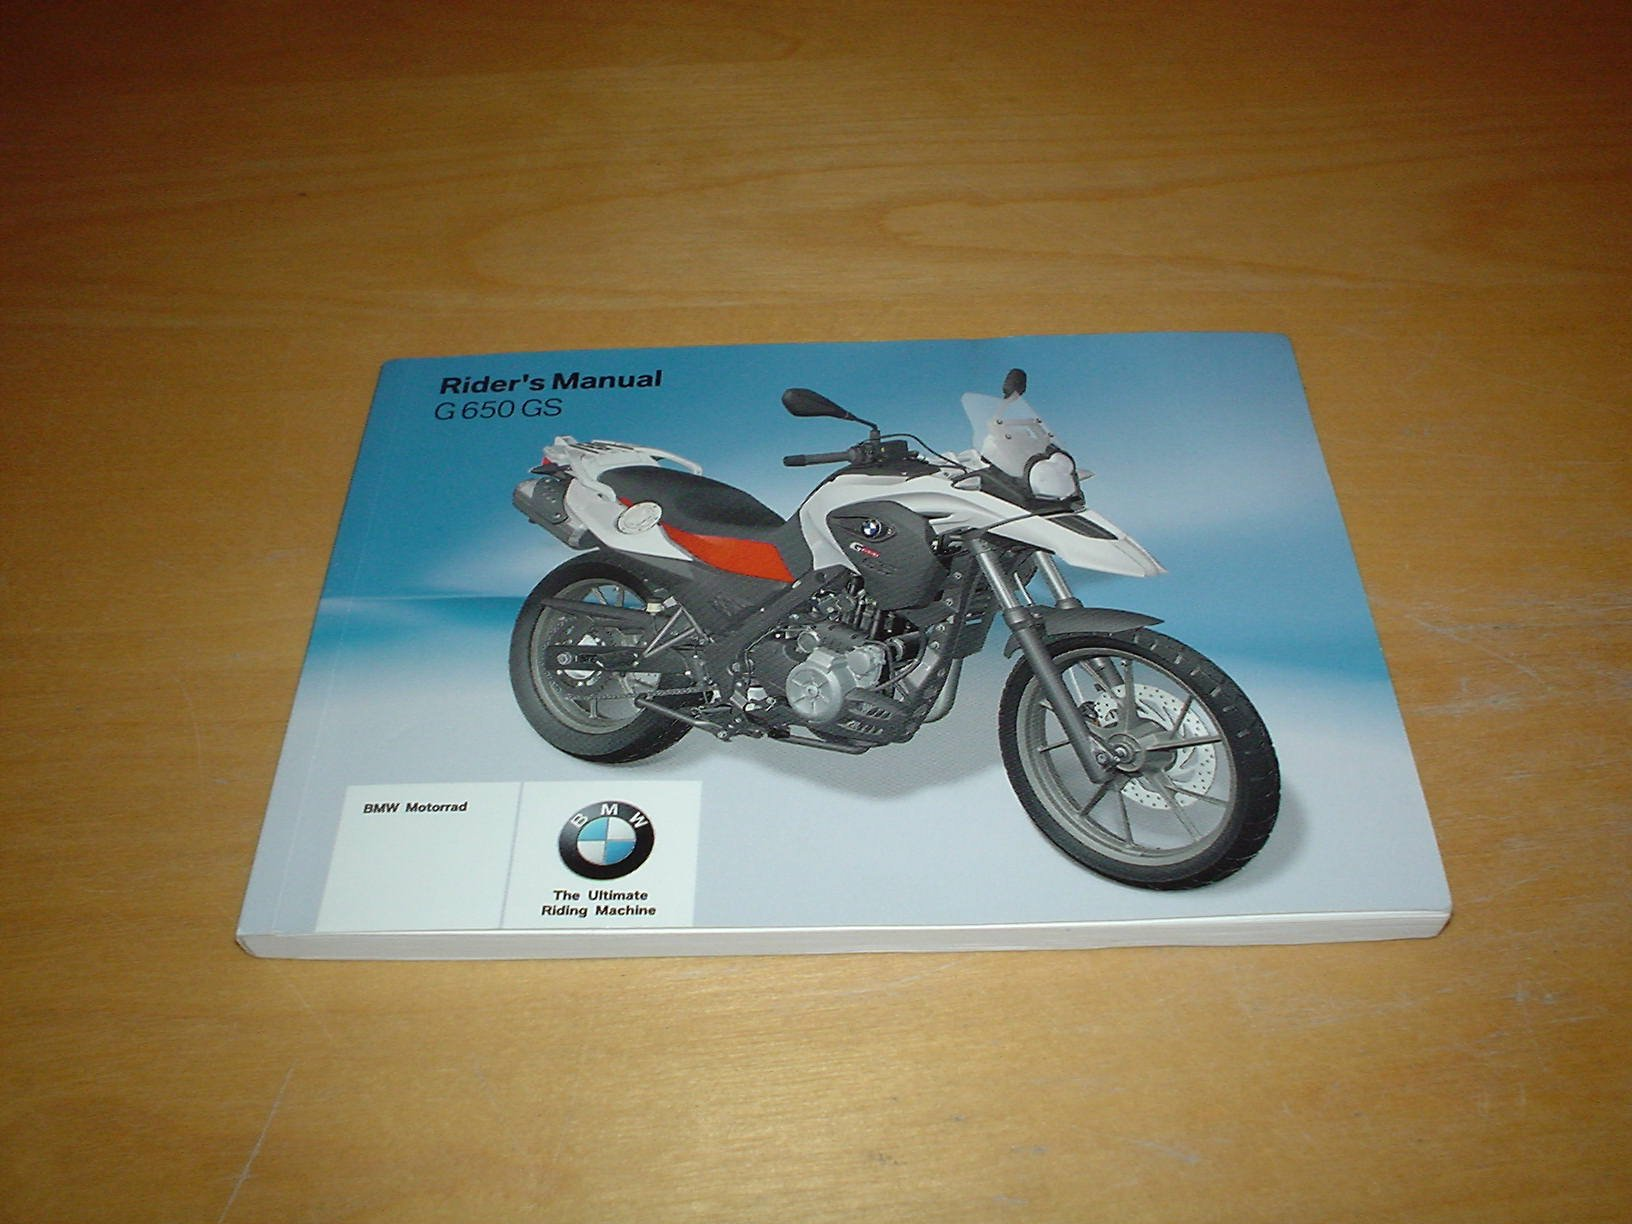 BMW G650 GS MOTORCYCLE OWNERS HANDBOOK MANUAL Not Haynes G 650 GS 650GS  G650GS: Amazon.co.uk: BMW: Books